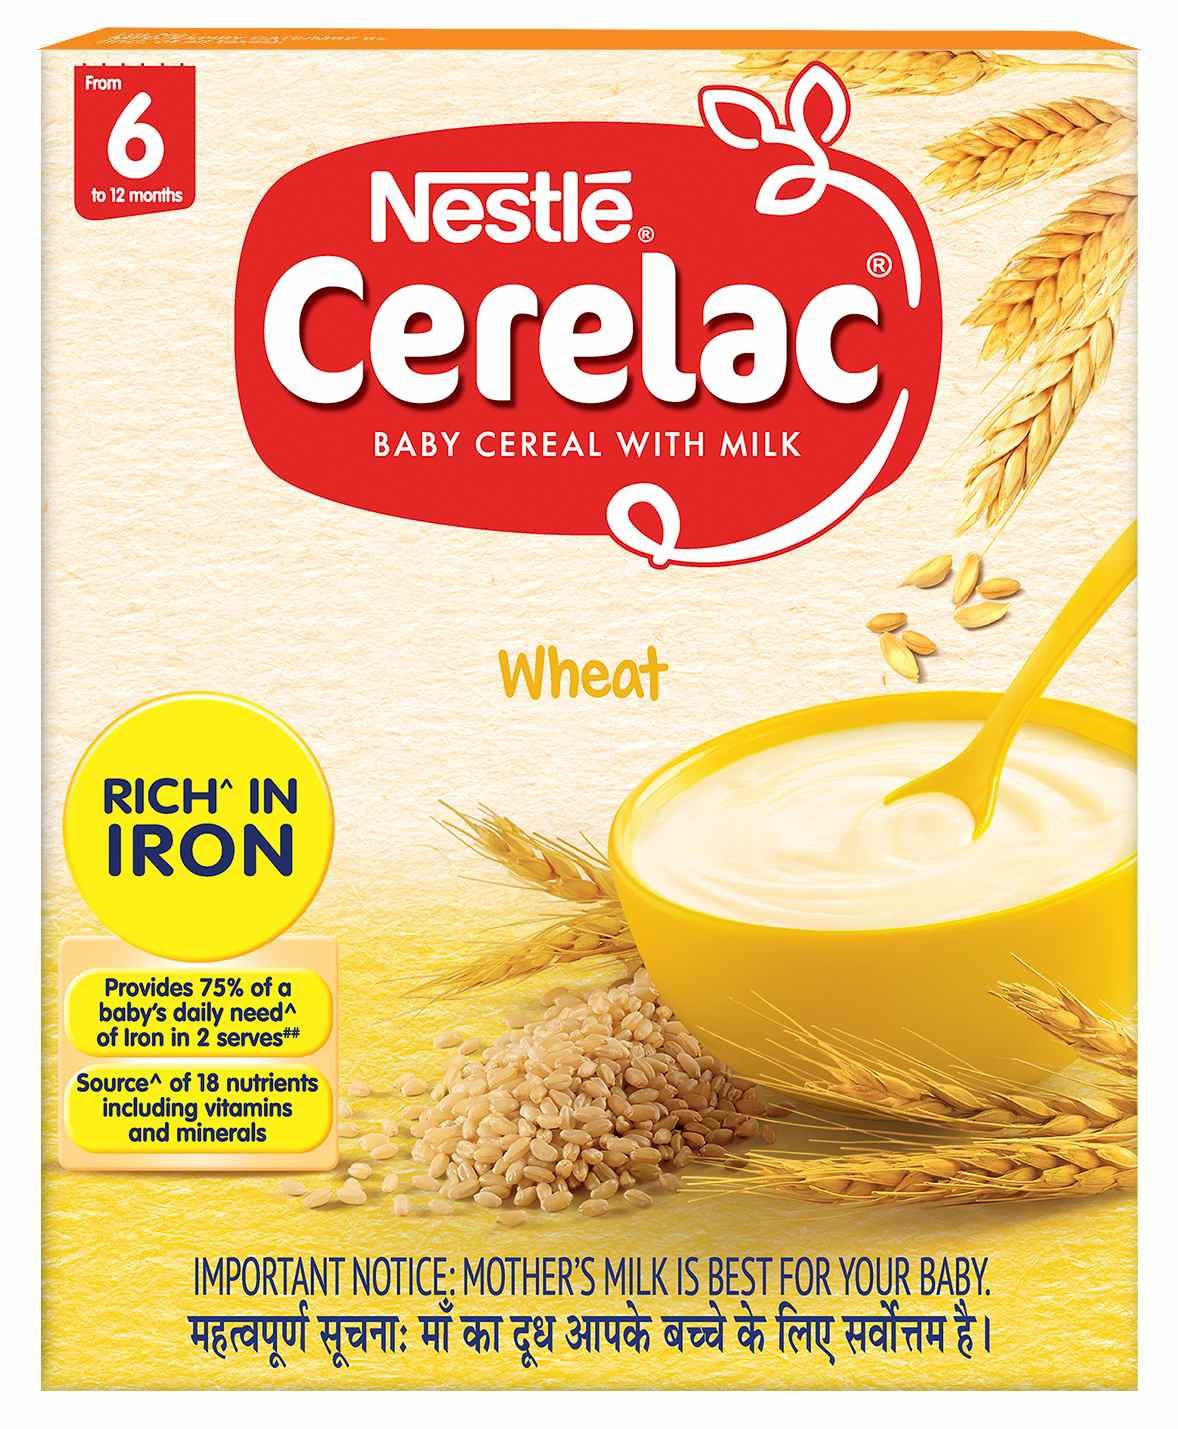 Nestle Cerelac Baby Cereal With Milk Wheat 300g